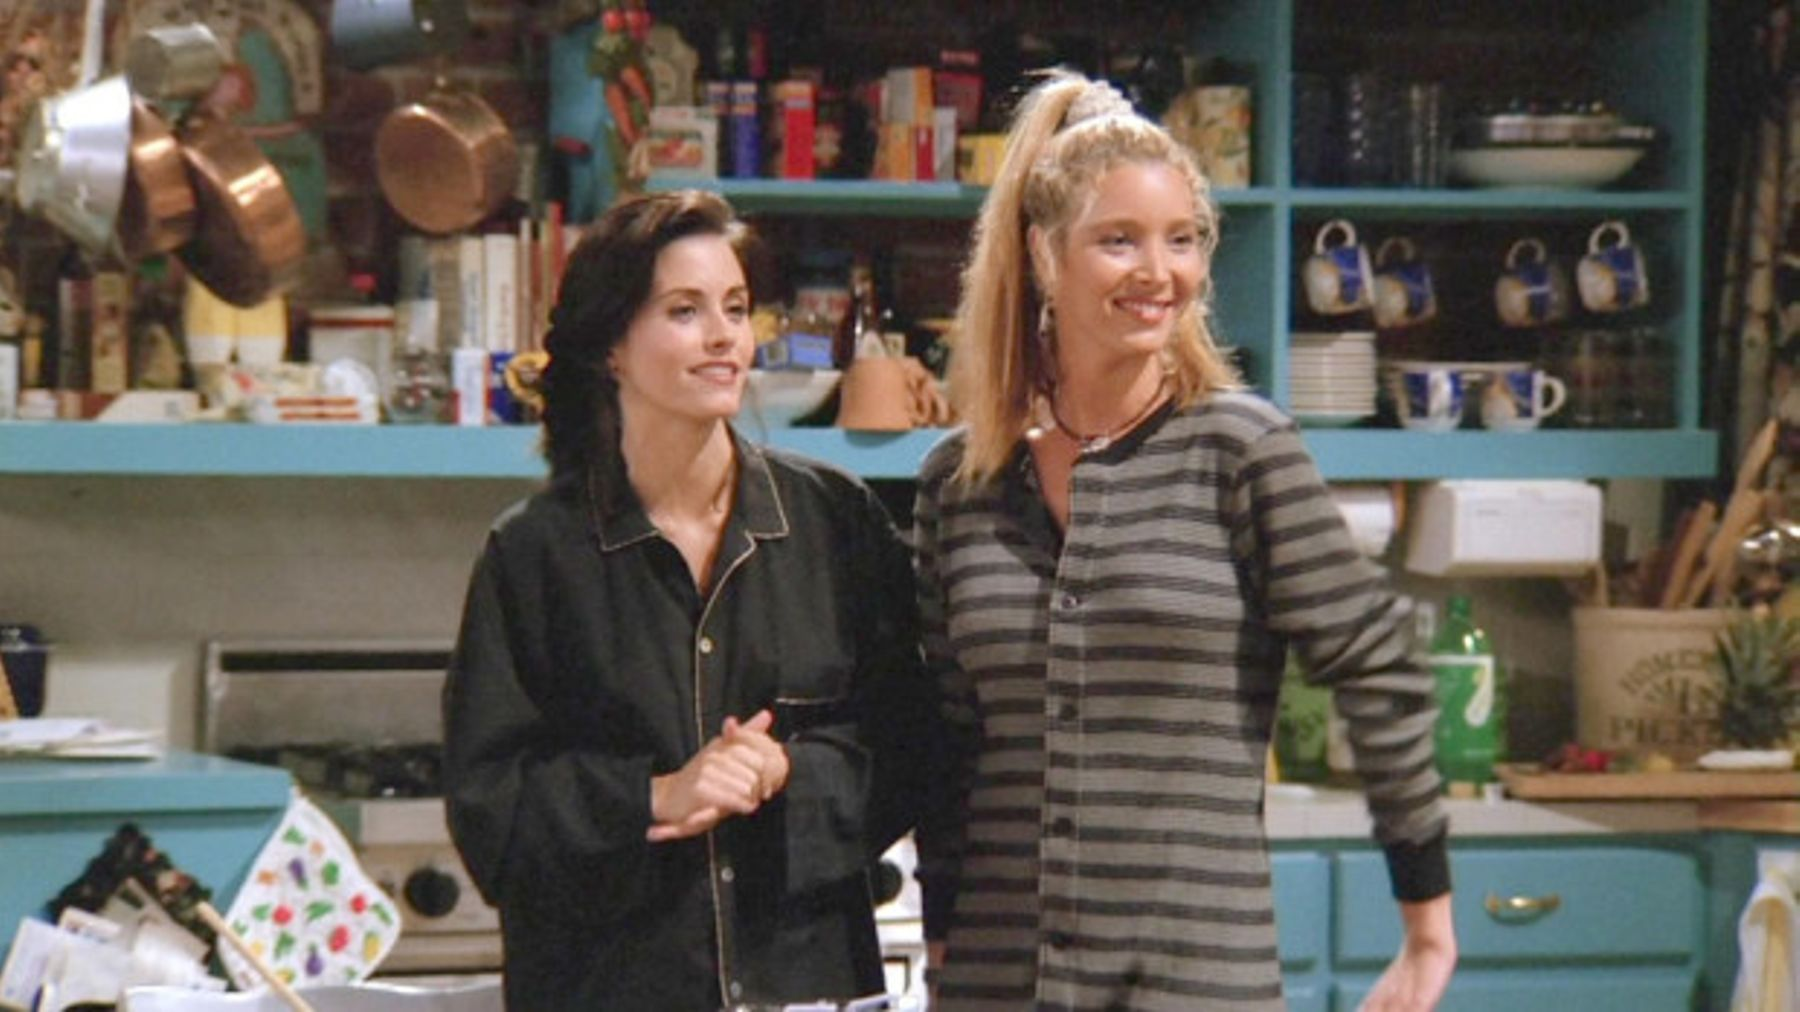 Courtney Cox And Lisa Kudrow Played A Friends Trivia Quiz And Won